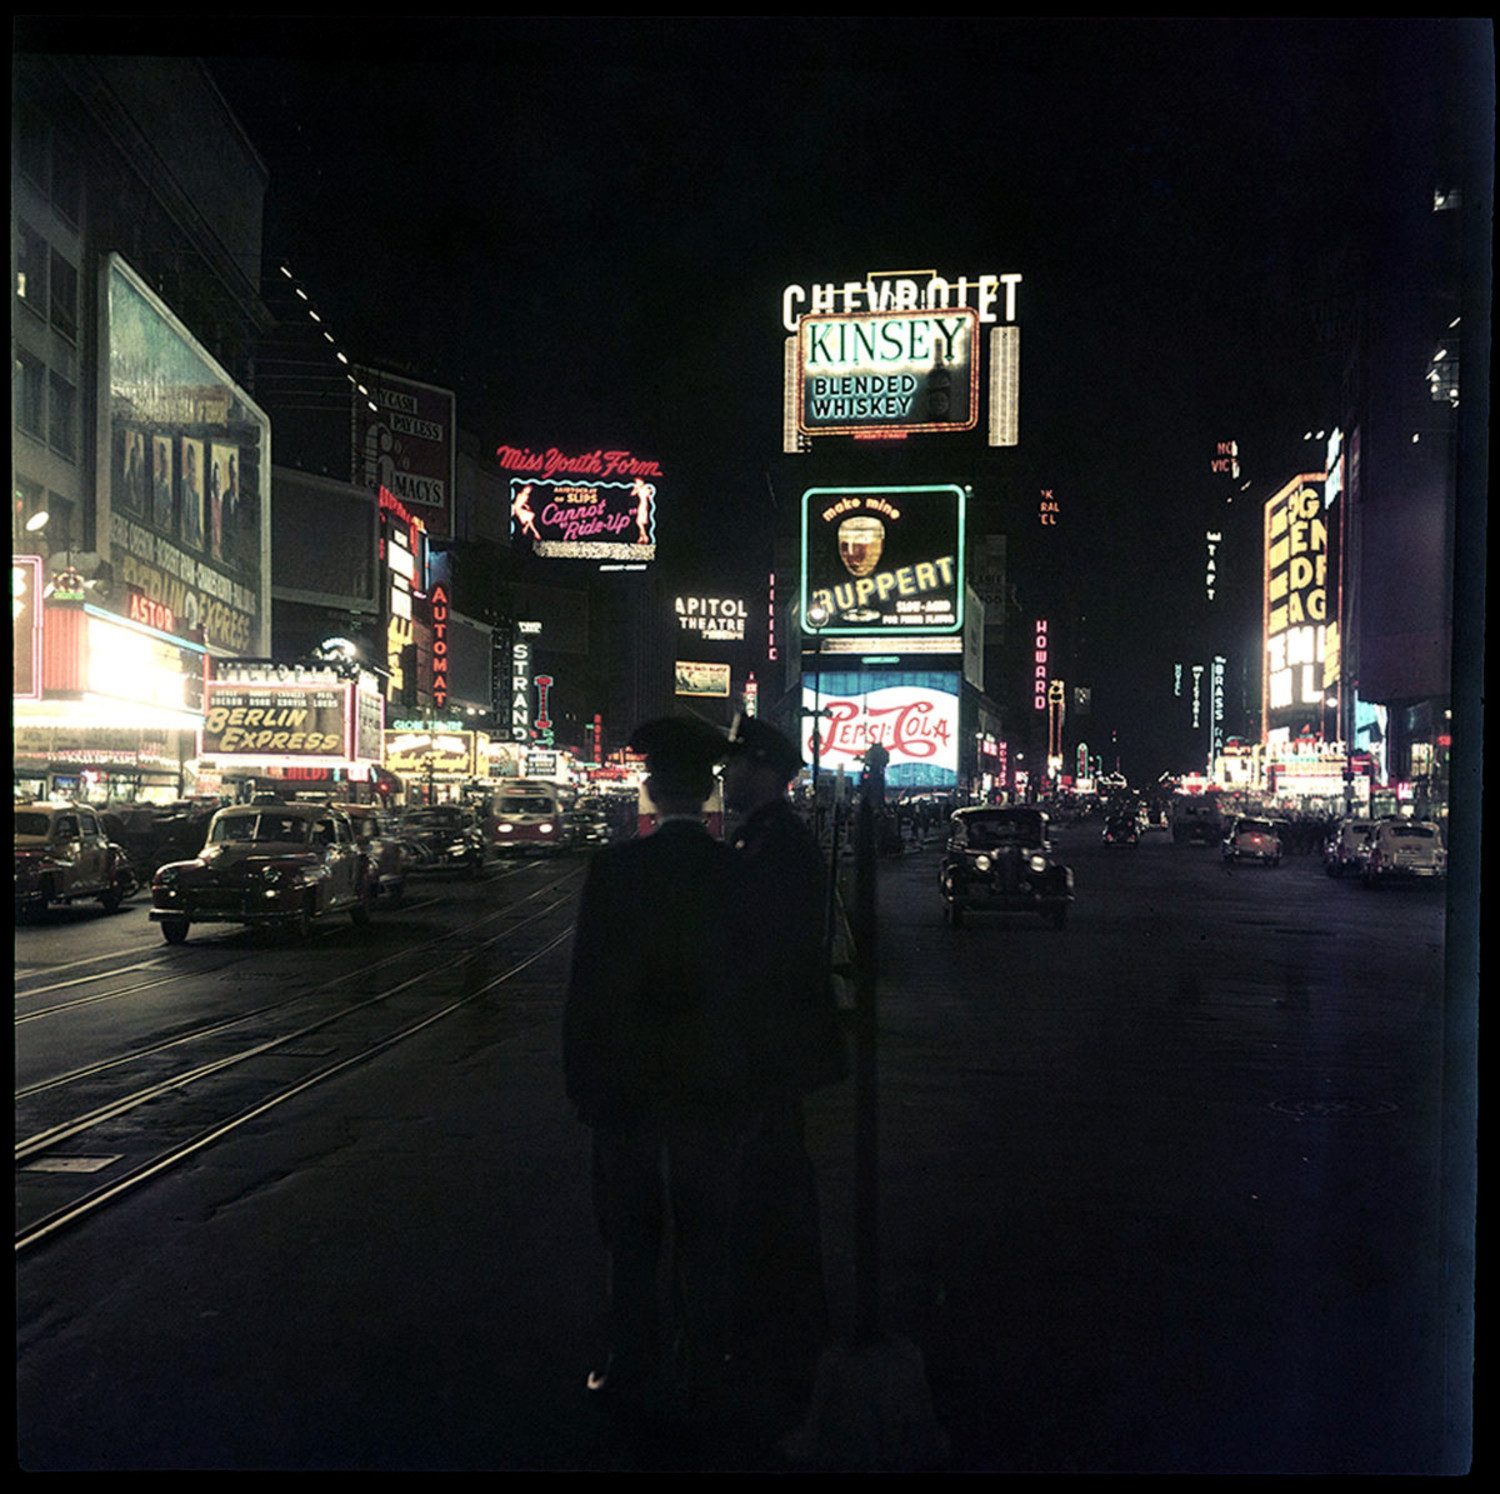 source: https://www.reddit.com/r/nyc/comments/5n2x3s/a_rare_negative_reveals_times_square_nyc_in_color/